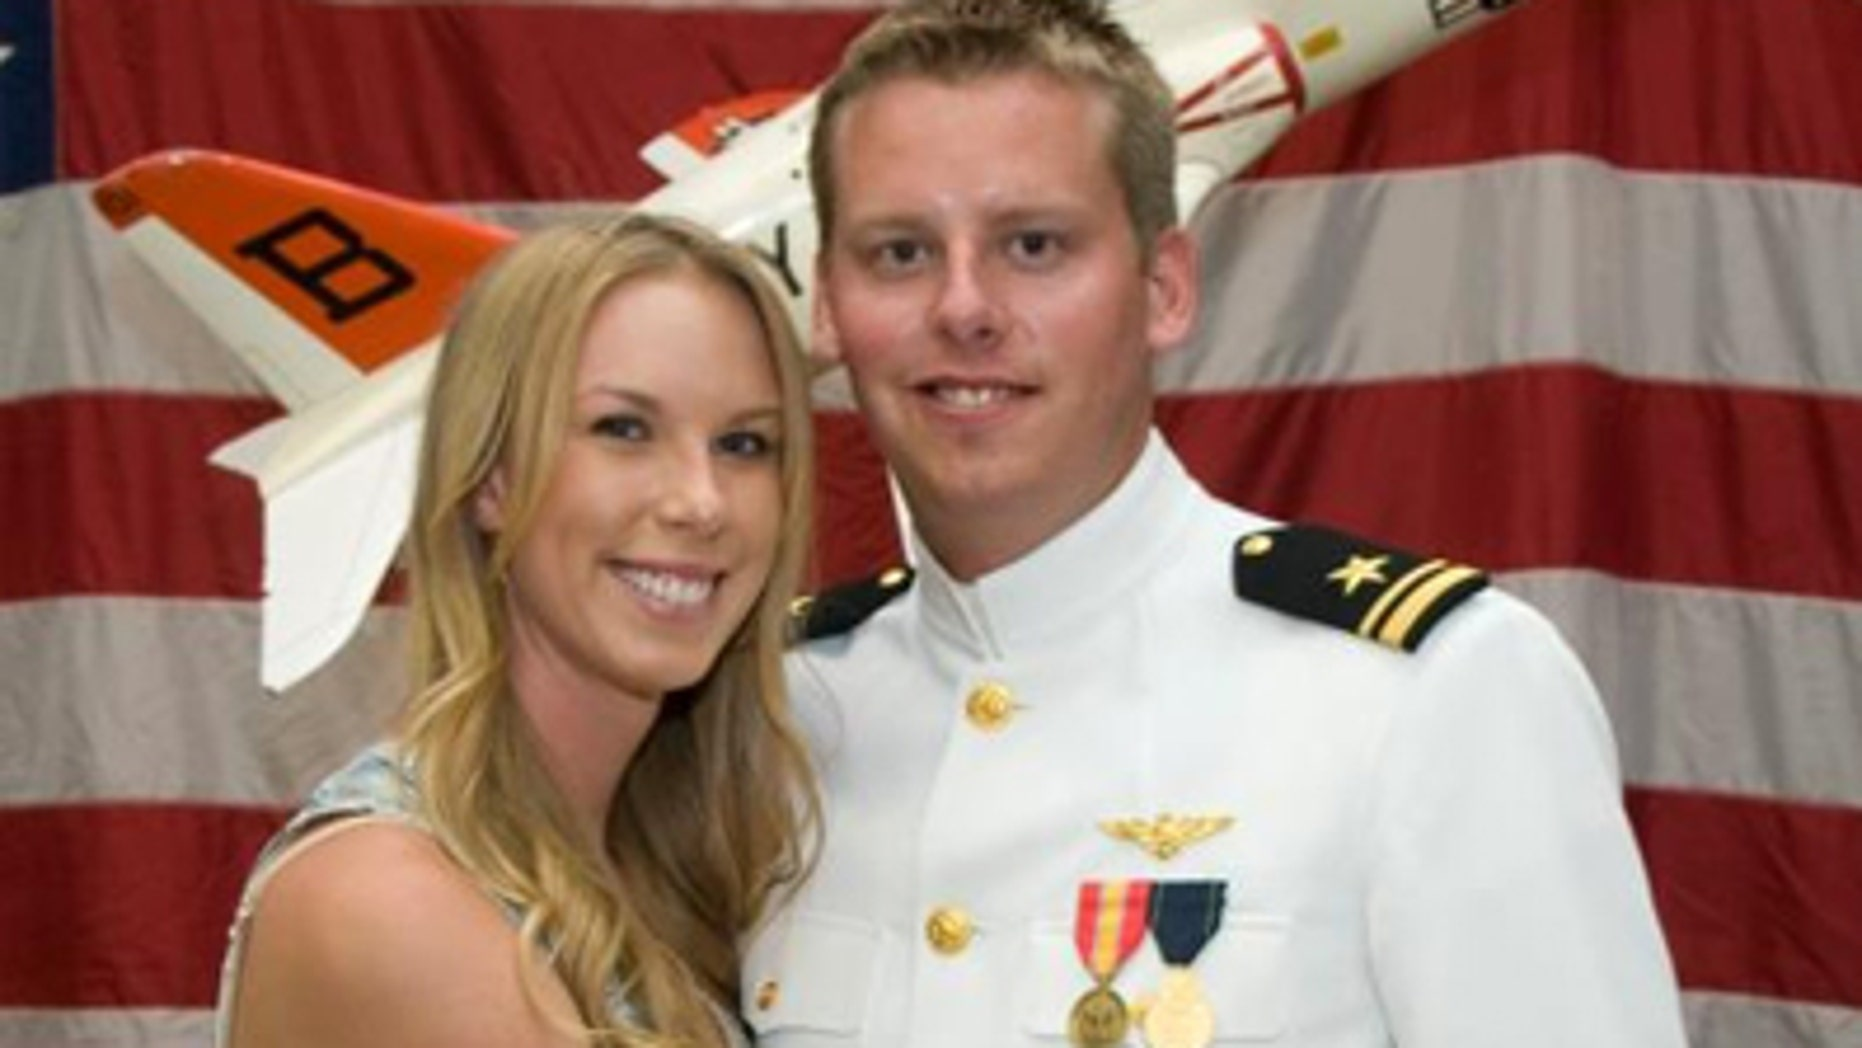 January 2, 2011: This photo provided by the Reis family shows Karen Reis, left, and her brother David Reis at his winging ceremony for the Navy.